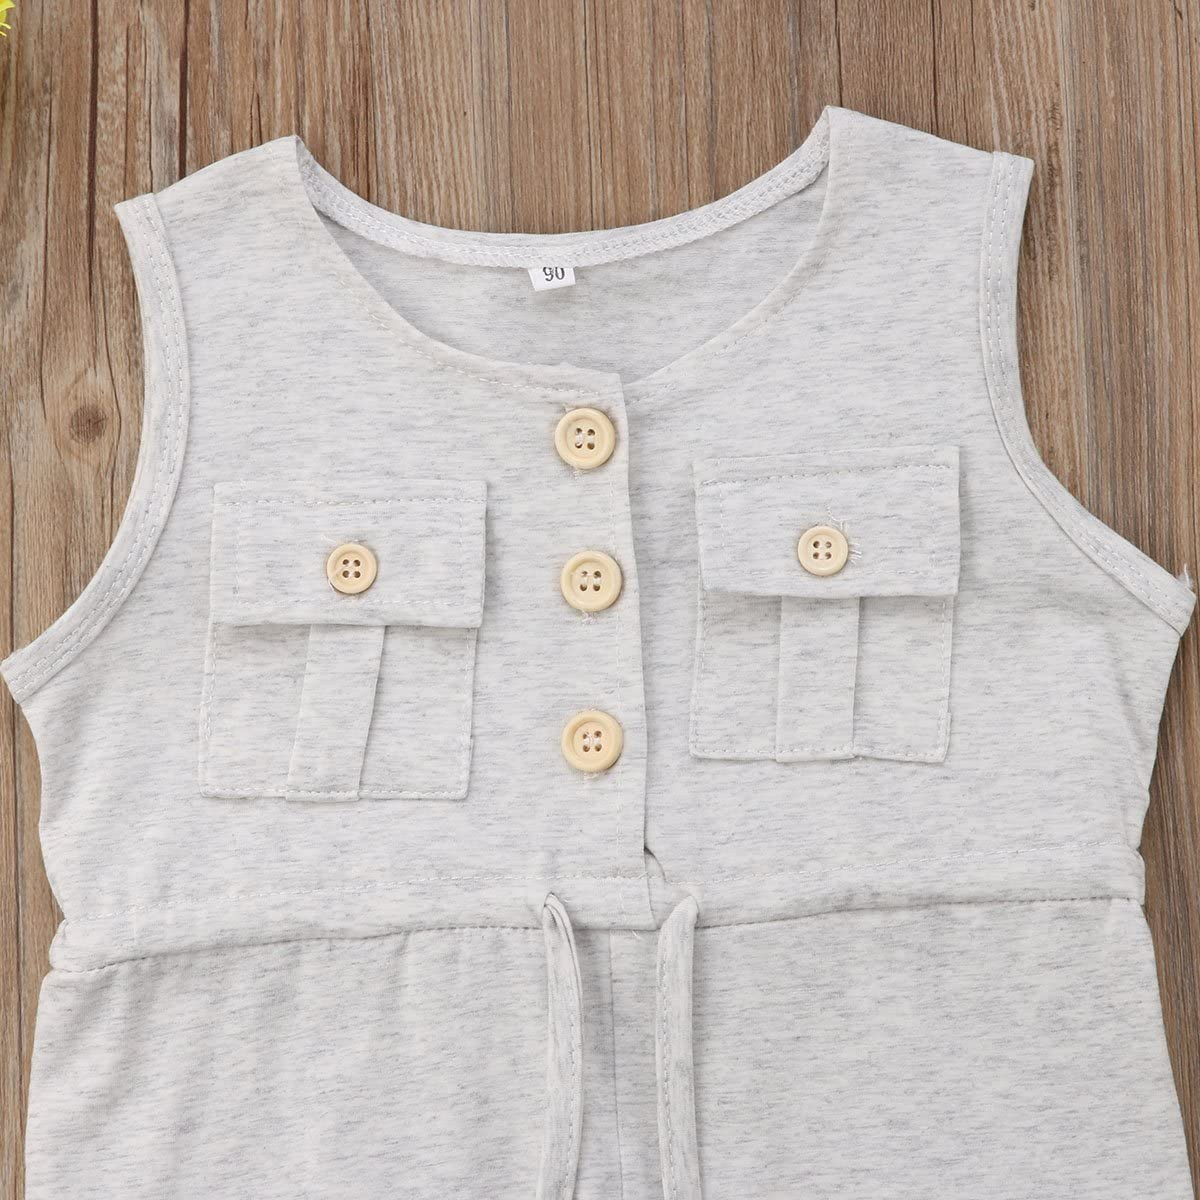 GoodFilling Toddler Kids Baby Girl Sleeveless Jumpsuit One Piece Romper Overalls Pants Outfits